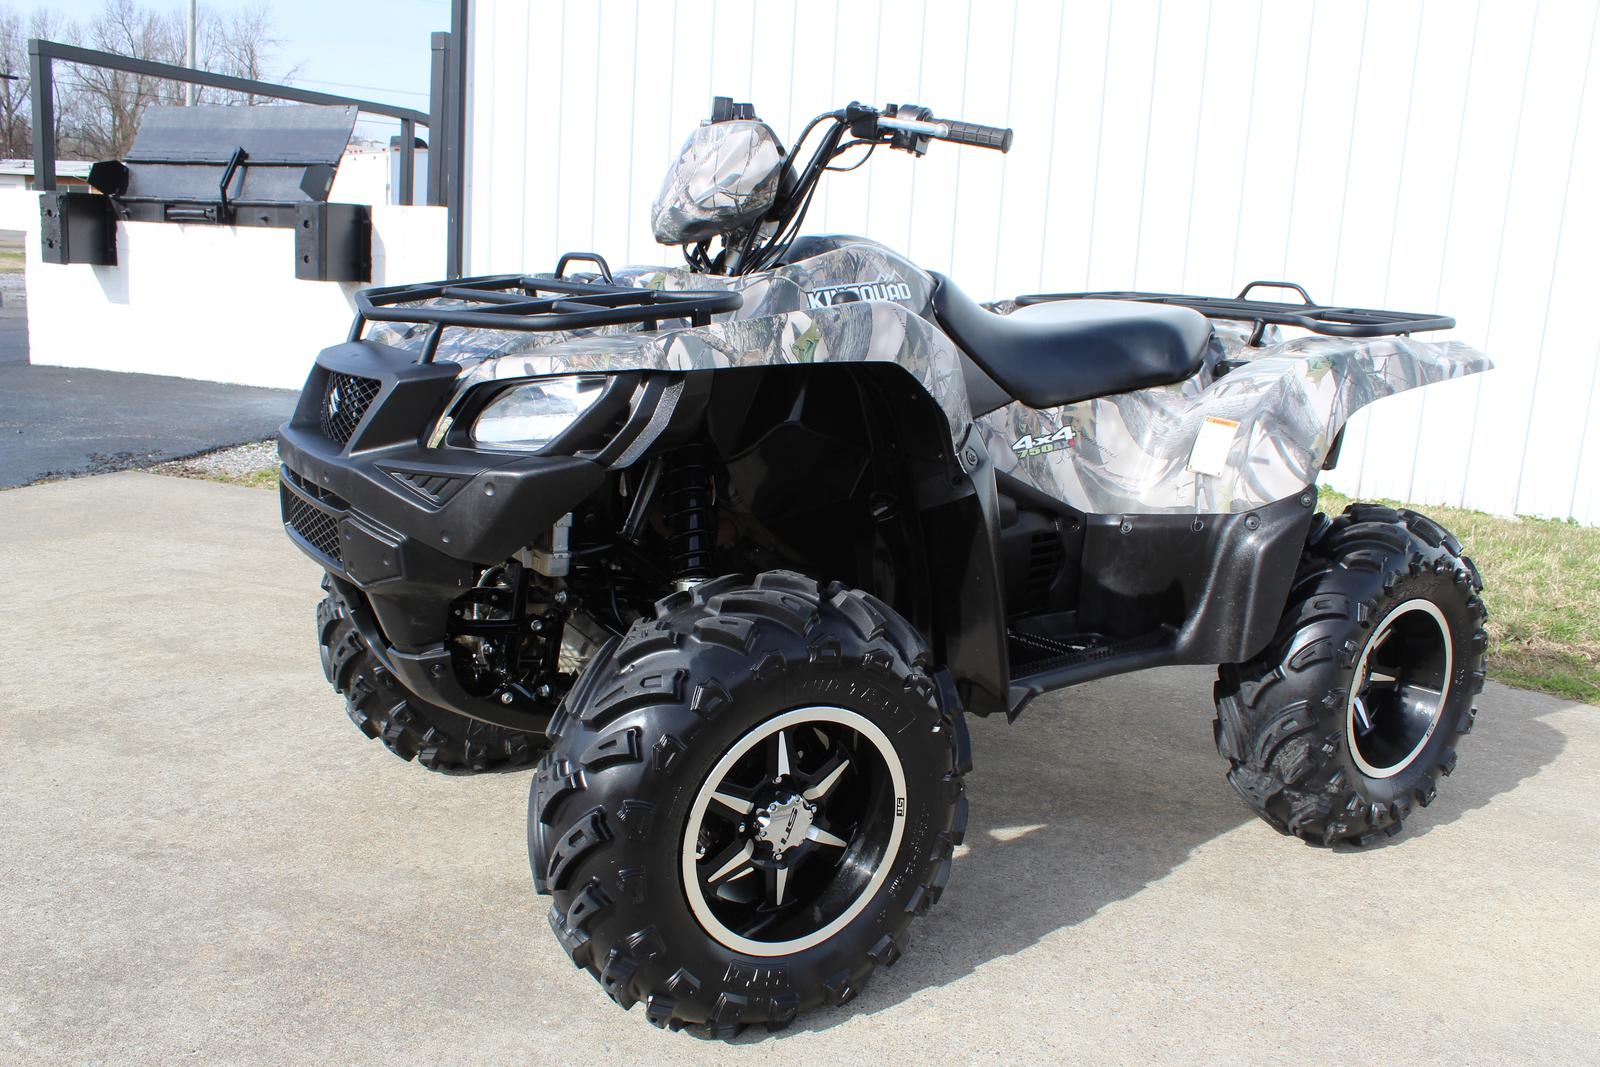 hight resolution of 2016 suzuki king quad 750 axi eps camo for sale in paducah ky tank 150cc sport atv wiring along with suzuki king quad 750 fuel pump